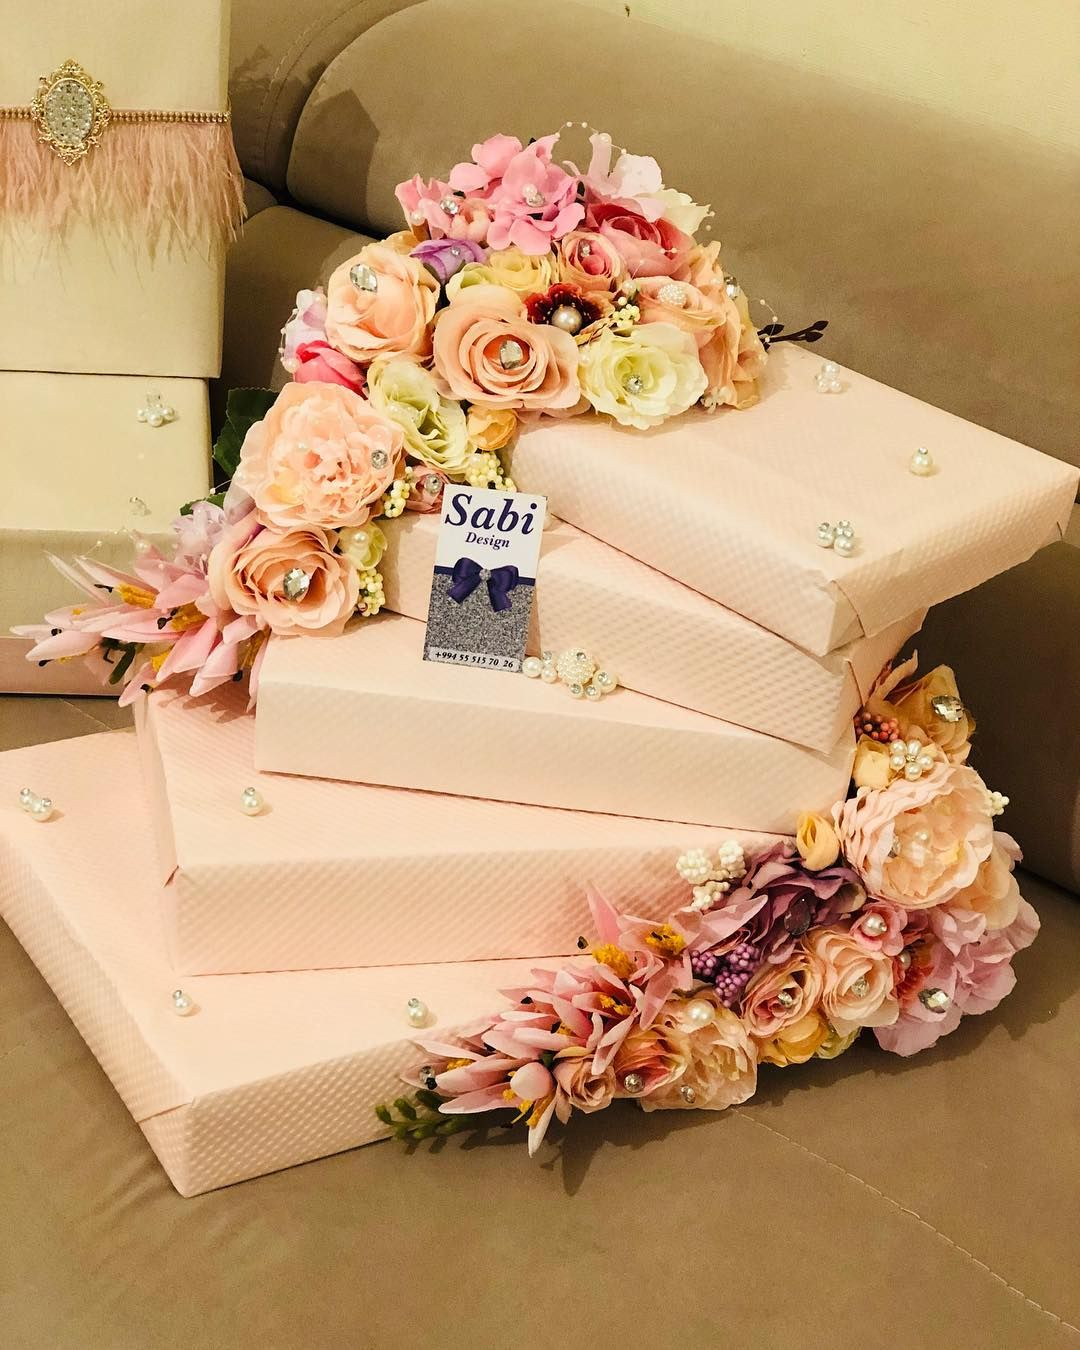 Pin By Suhaila On Xoncalar Wedding Gifts Packaging Wedding Gift Wrapping Engagement Decorations